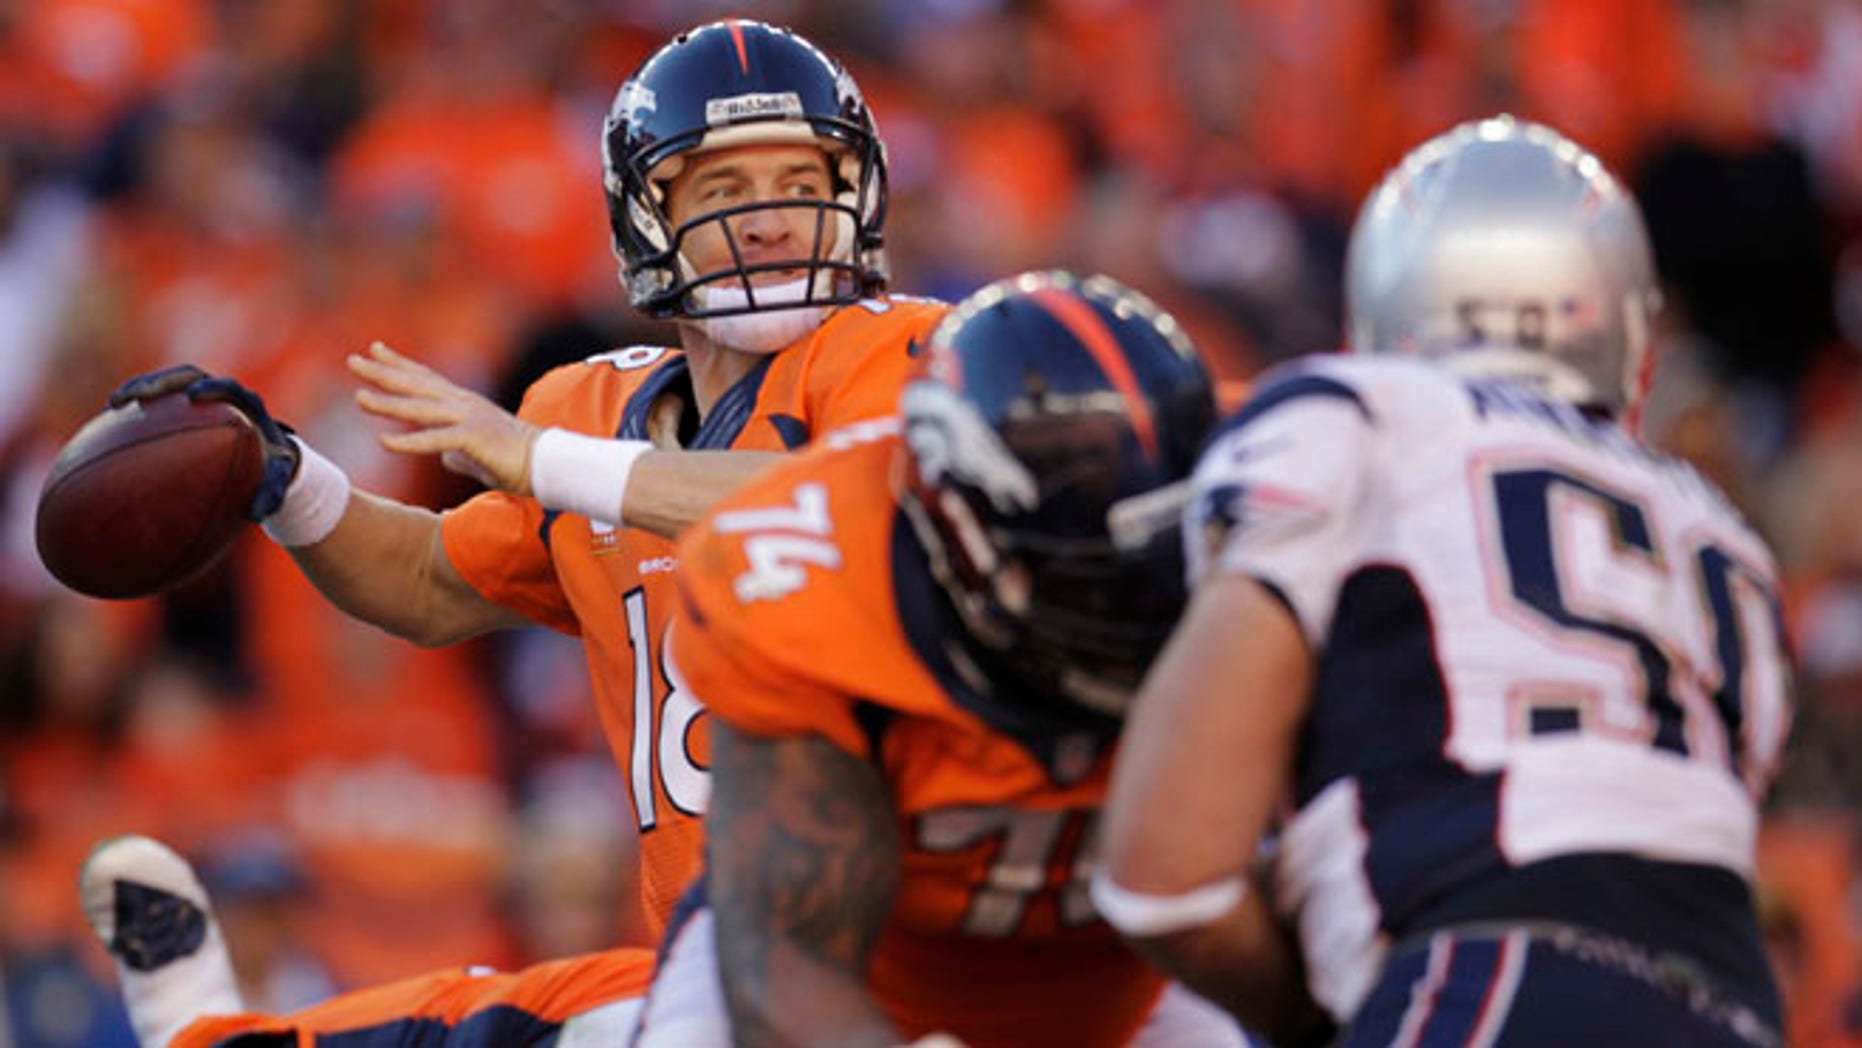 Jan. 19, 2014: Denver Broncos quarterback Peyton Manning (18) passes during the second half of the AFC Championship NFL playoff football game against the New England Patriots in Denver.